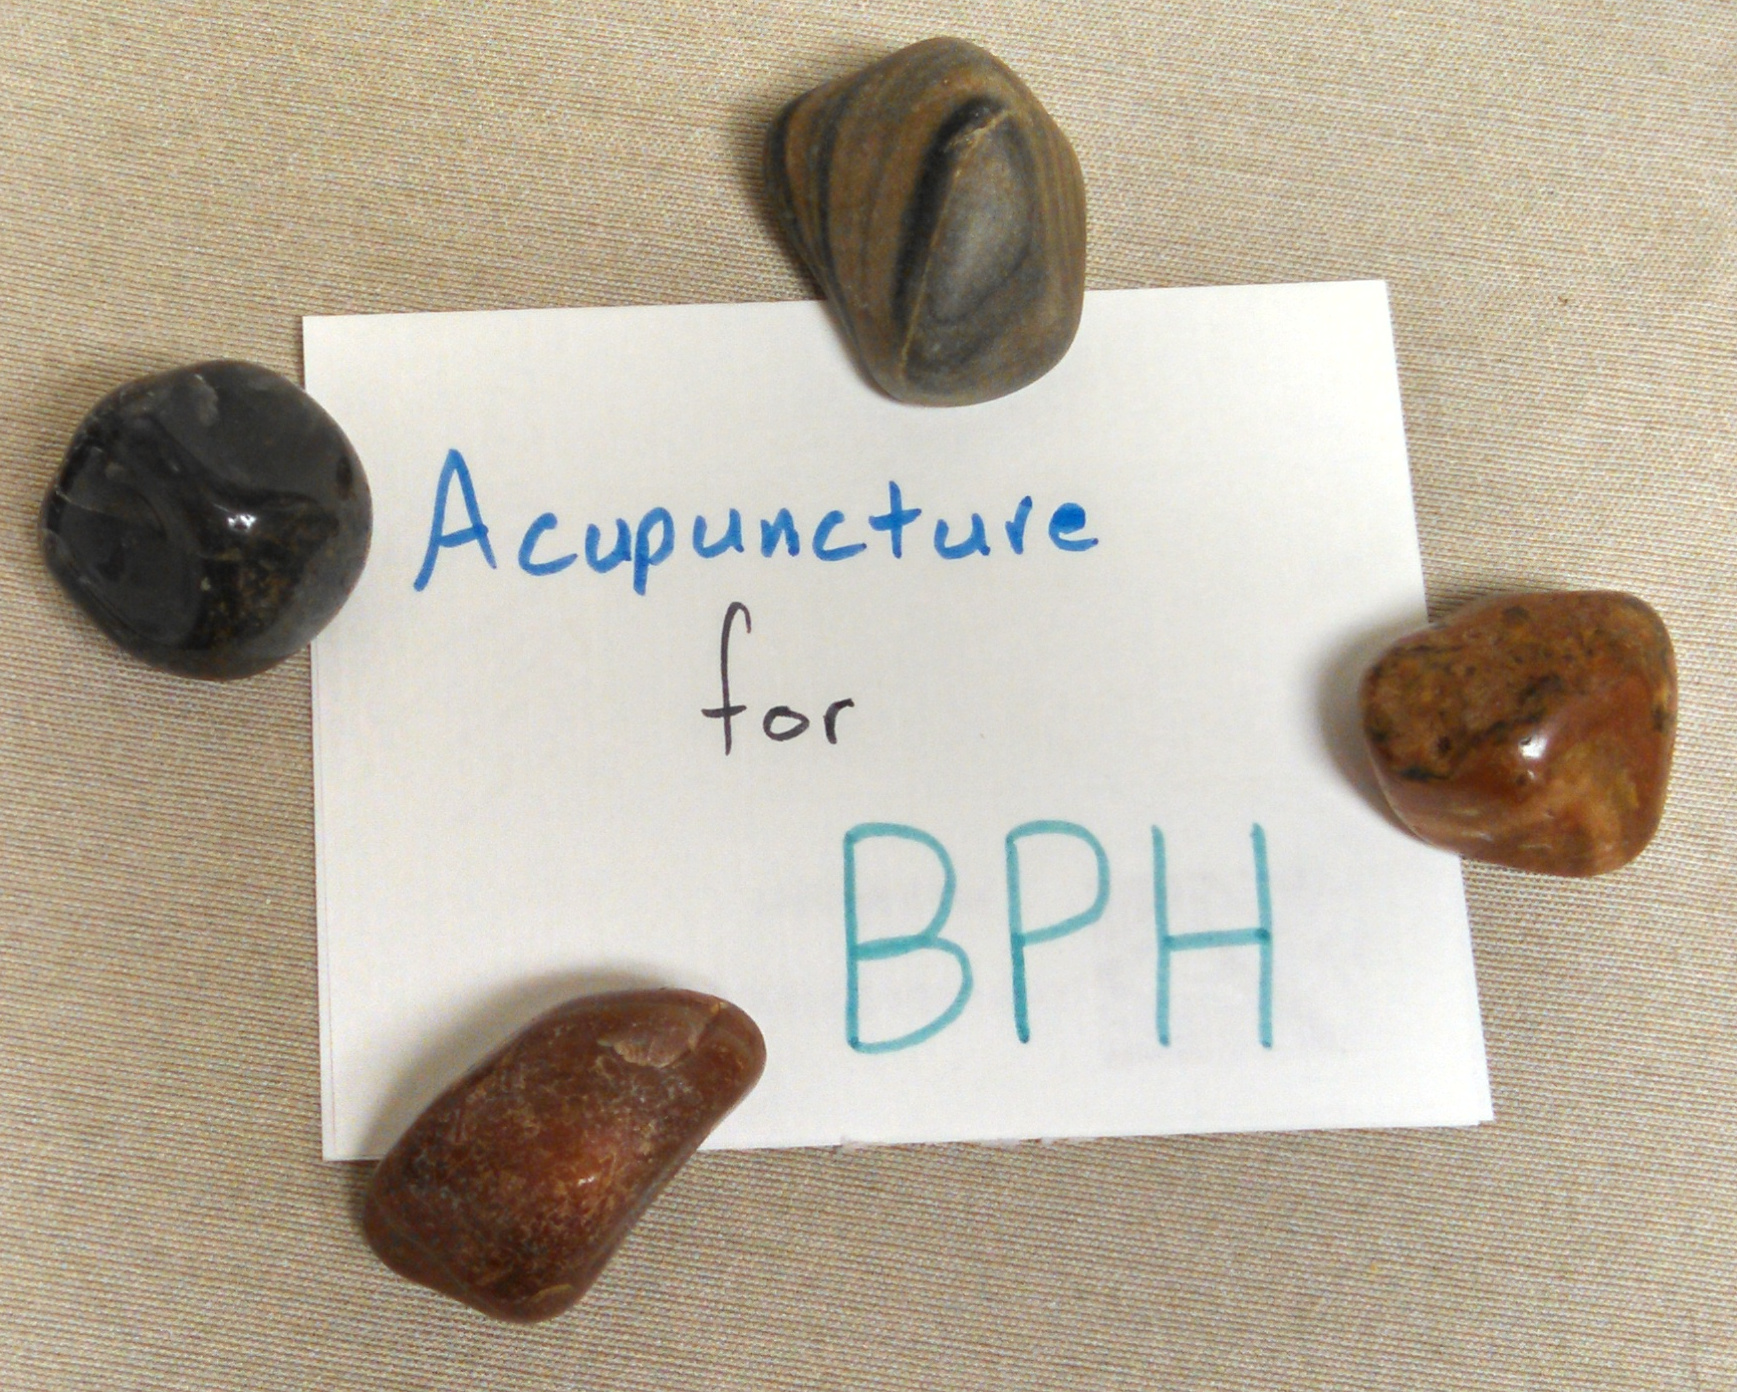 Acupuncture for BPH